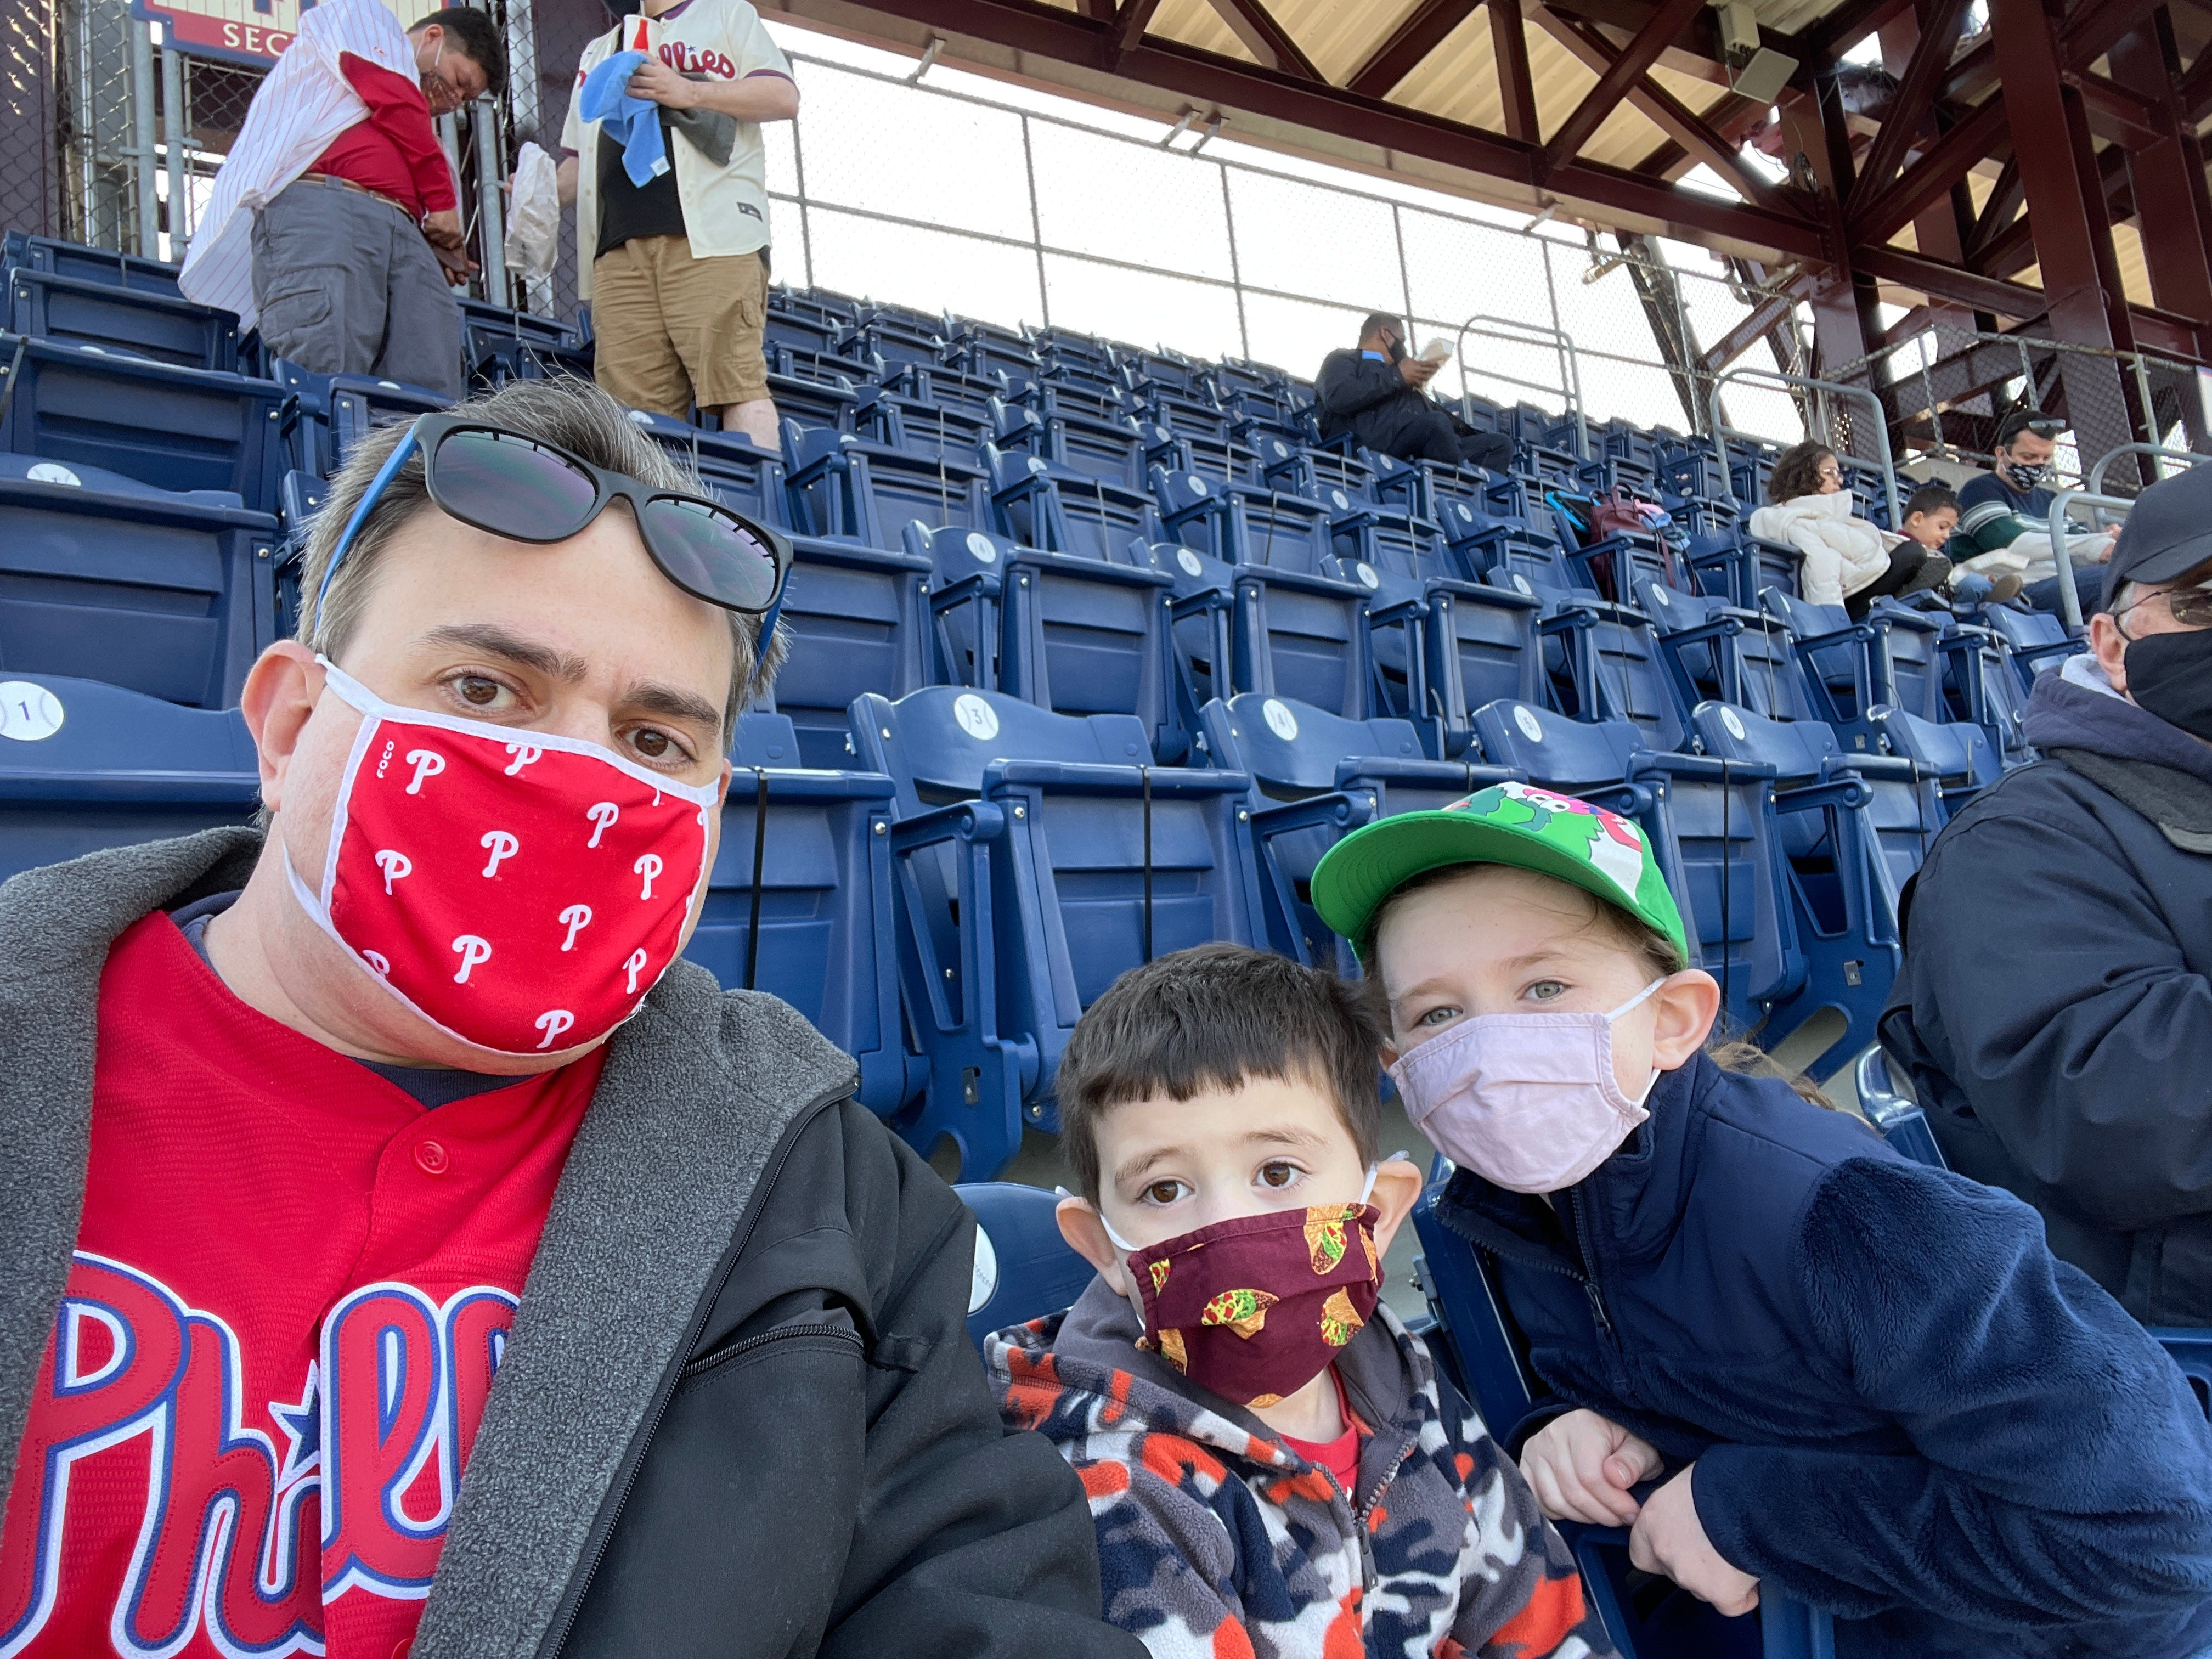 Daniel Horowitz, 42, takes his children, Adam, 4, and Emily, 8, to Citizens Bank Park in Philadelphia on April 4. Horowitz is concerned unvaccinated adults could endanger his son and daughter.